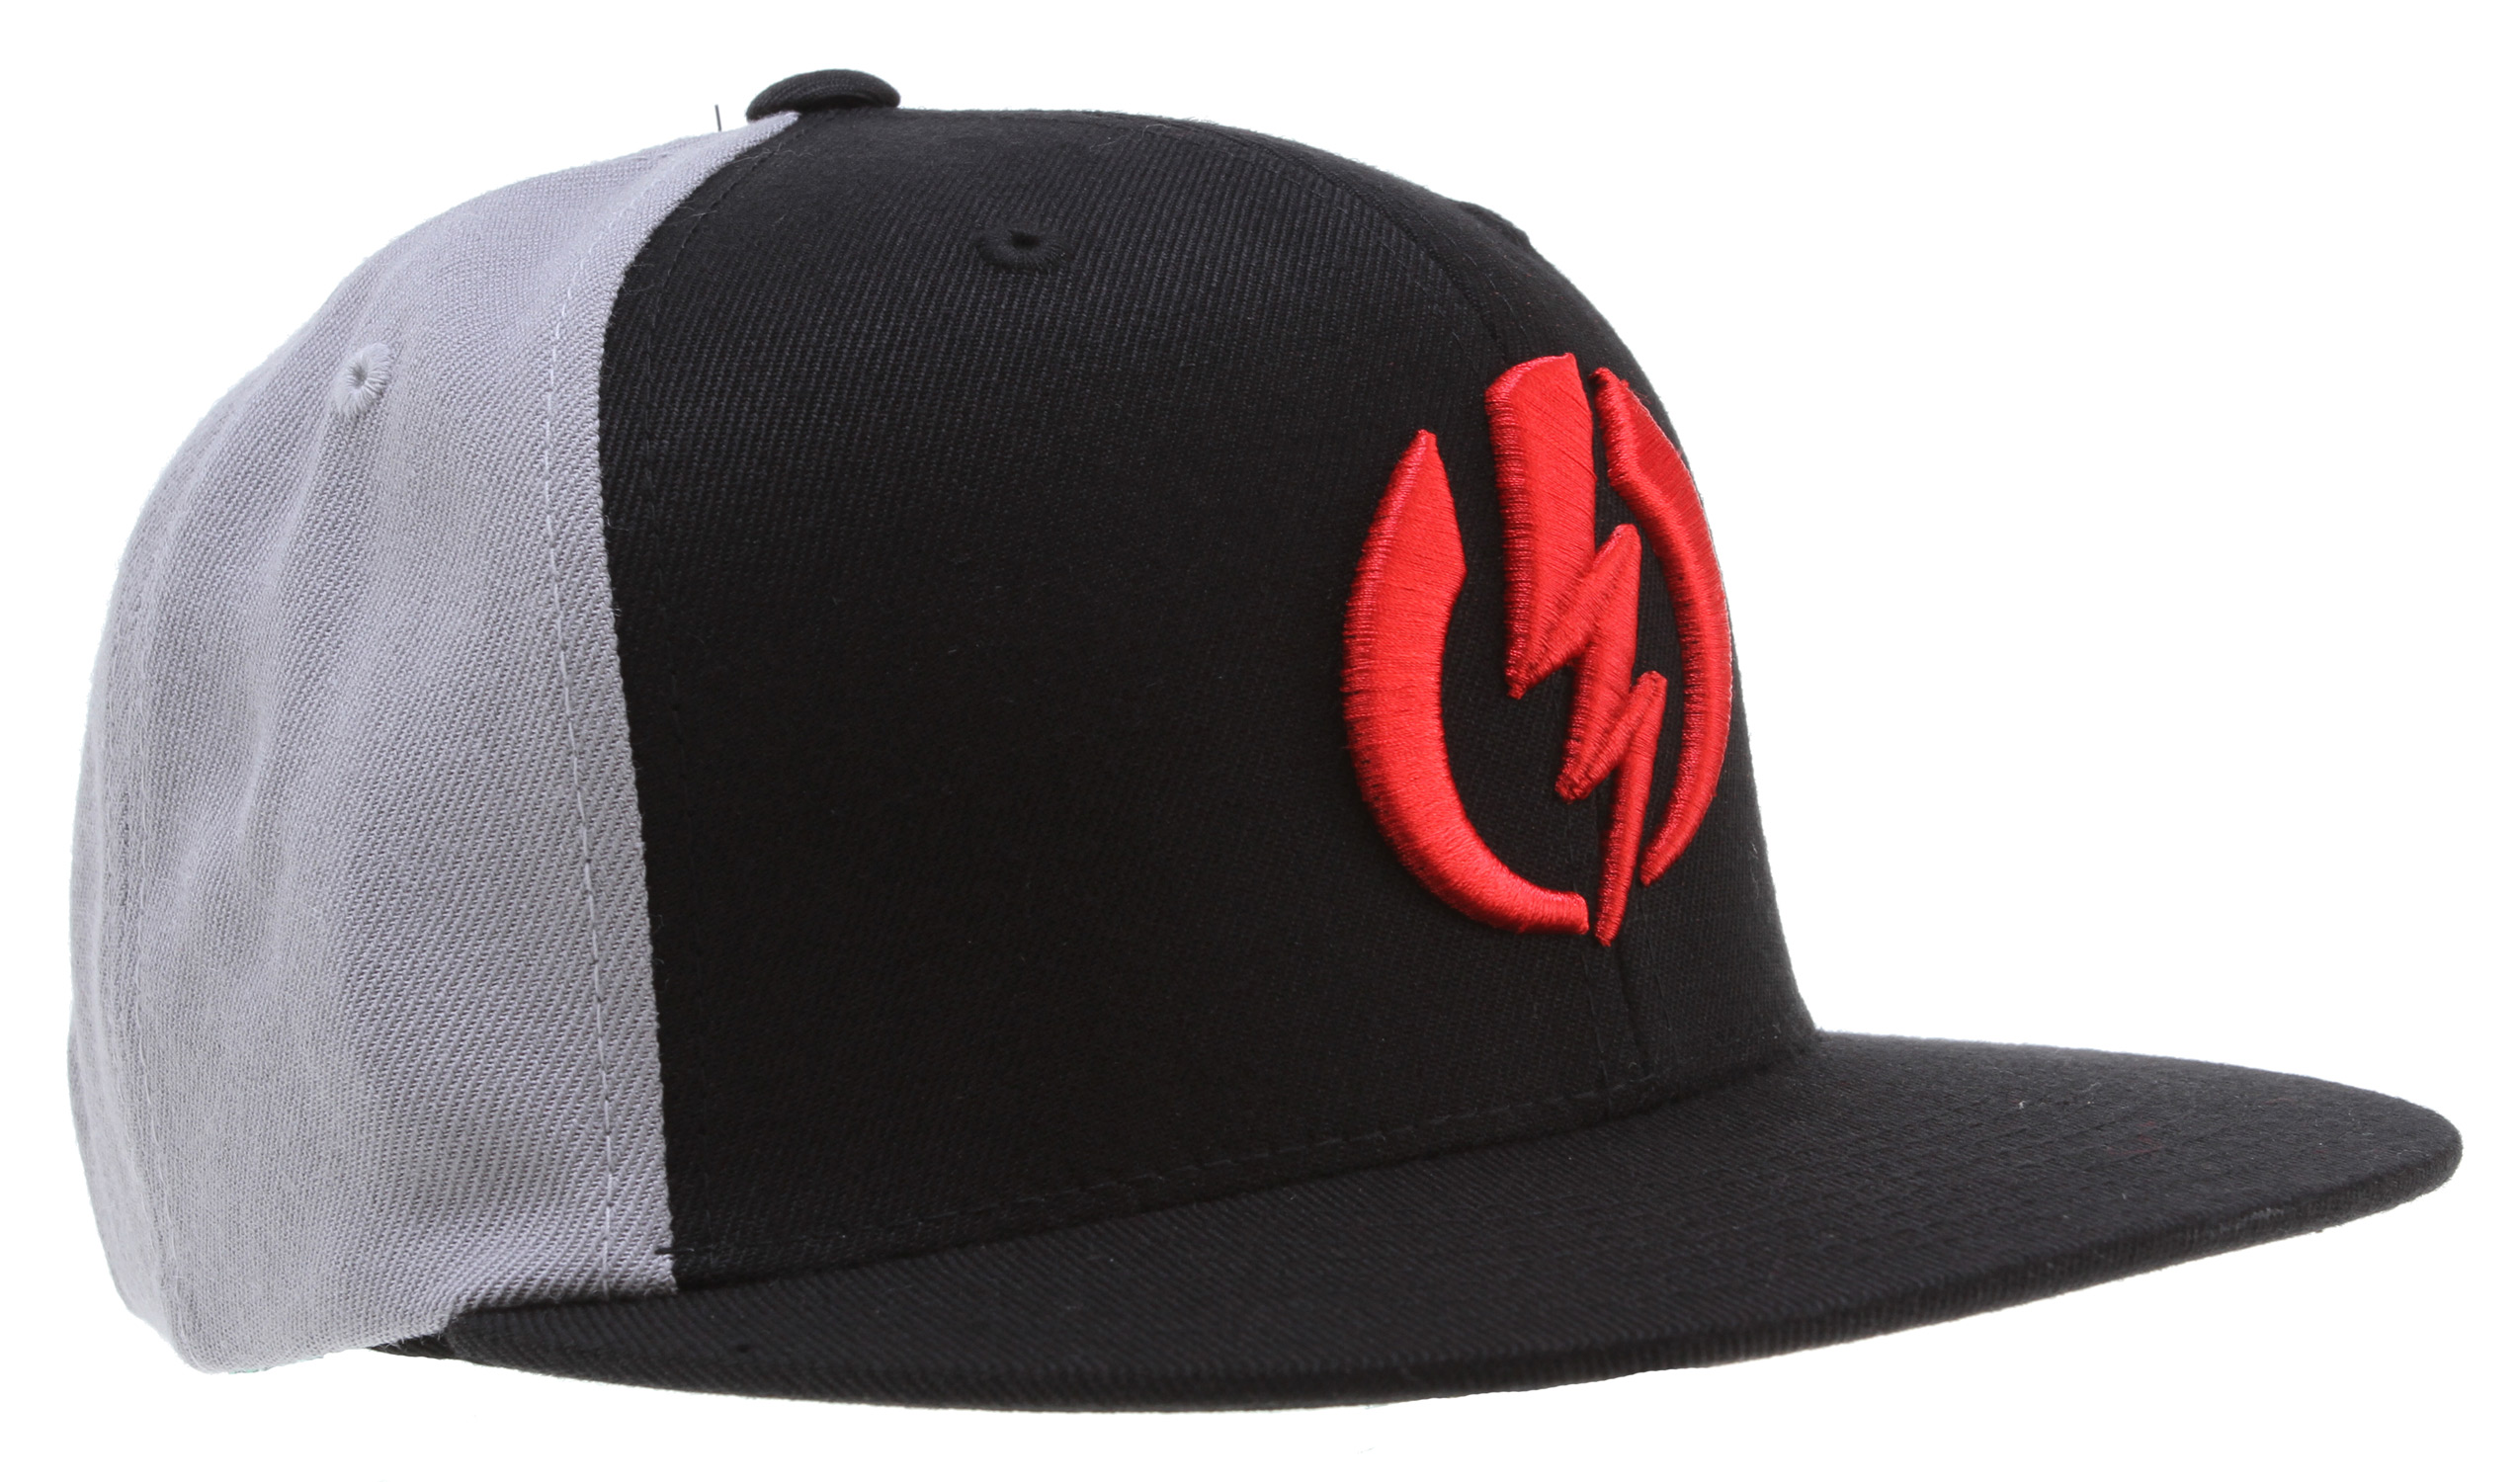 Key Features of the Electric Amp Cap: Men's Hat High Raised Embroidery 83% Acrylic 15% Wool 2% PU - $24.00